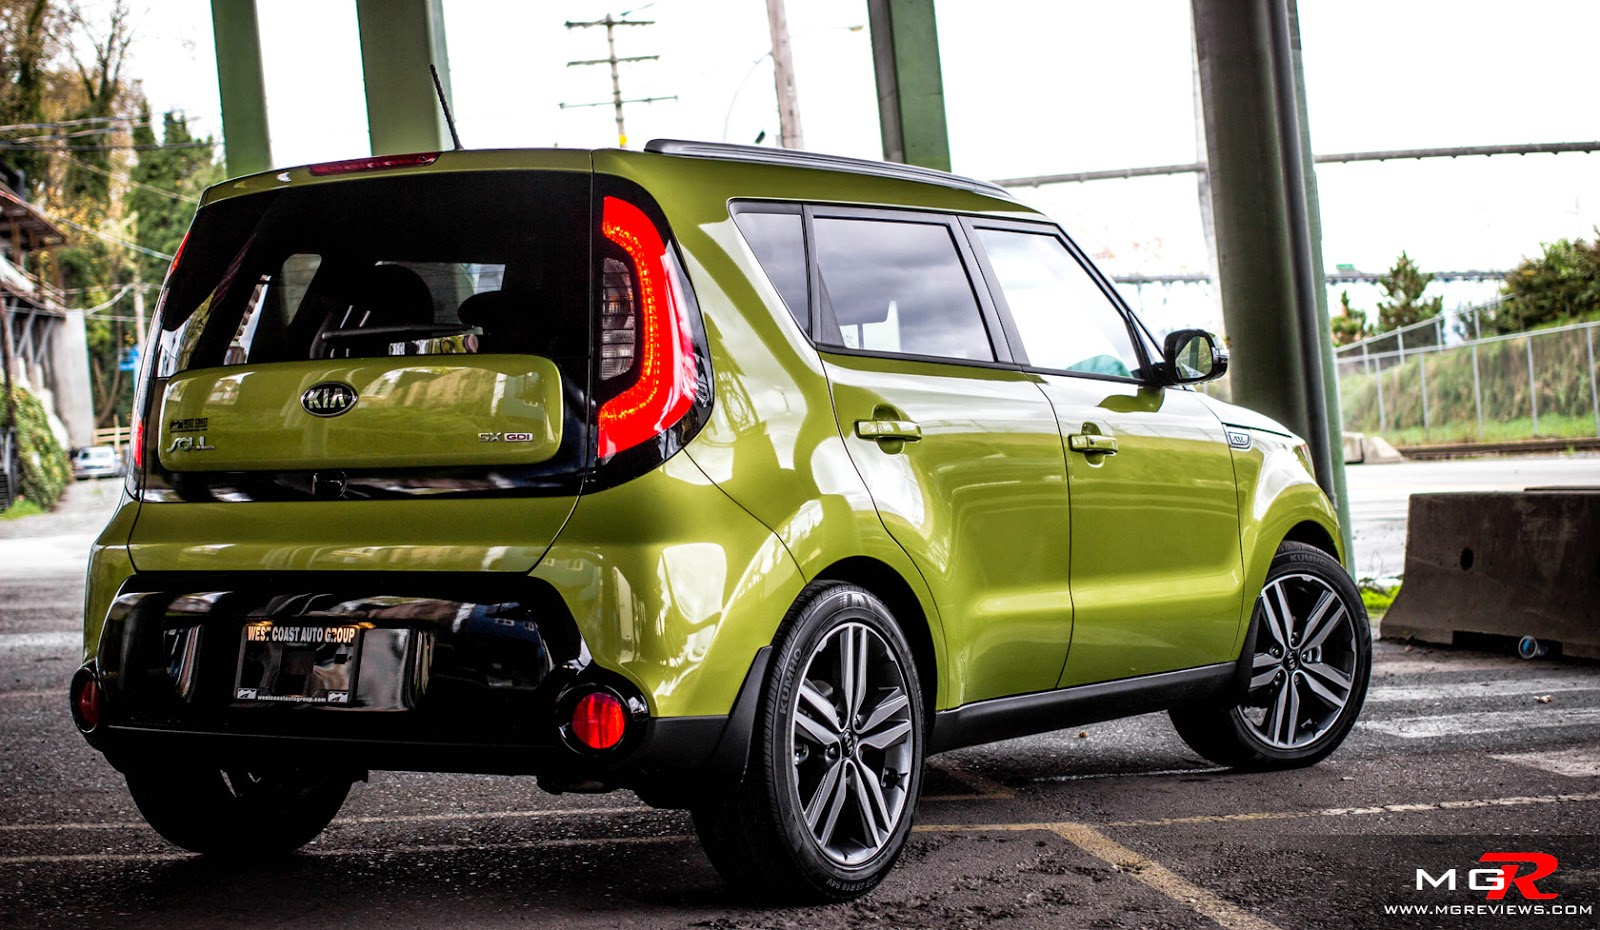 2015 kia soul exclaim alien green reviewhigh definition pics that is one heck of a wax job for sure this kia soul is ready for anything enjoy sciox Choice Image